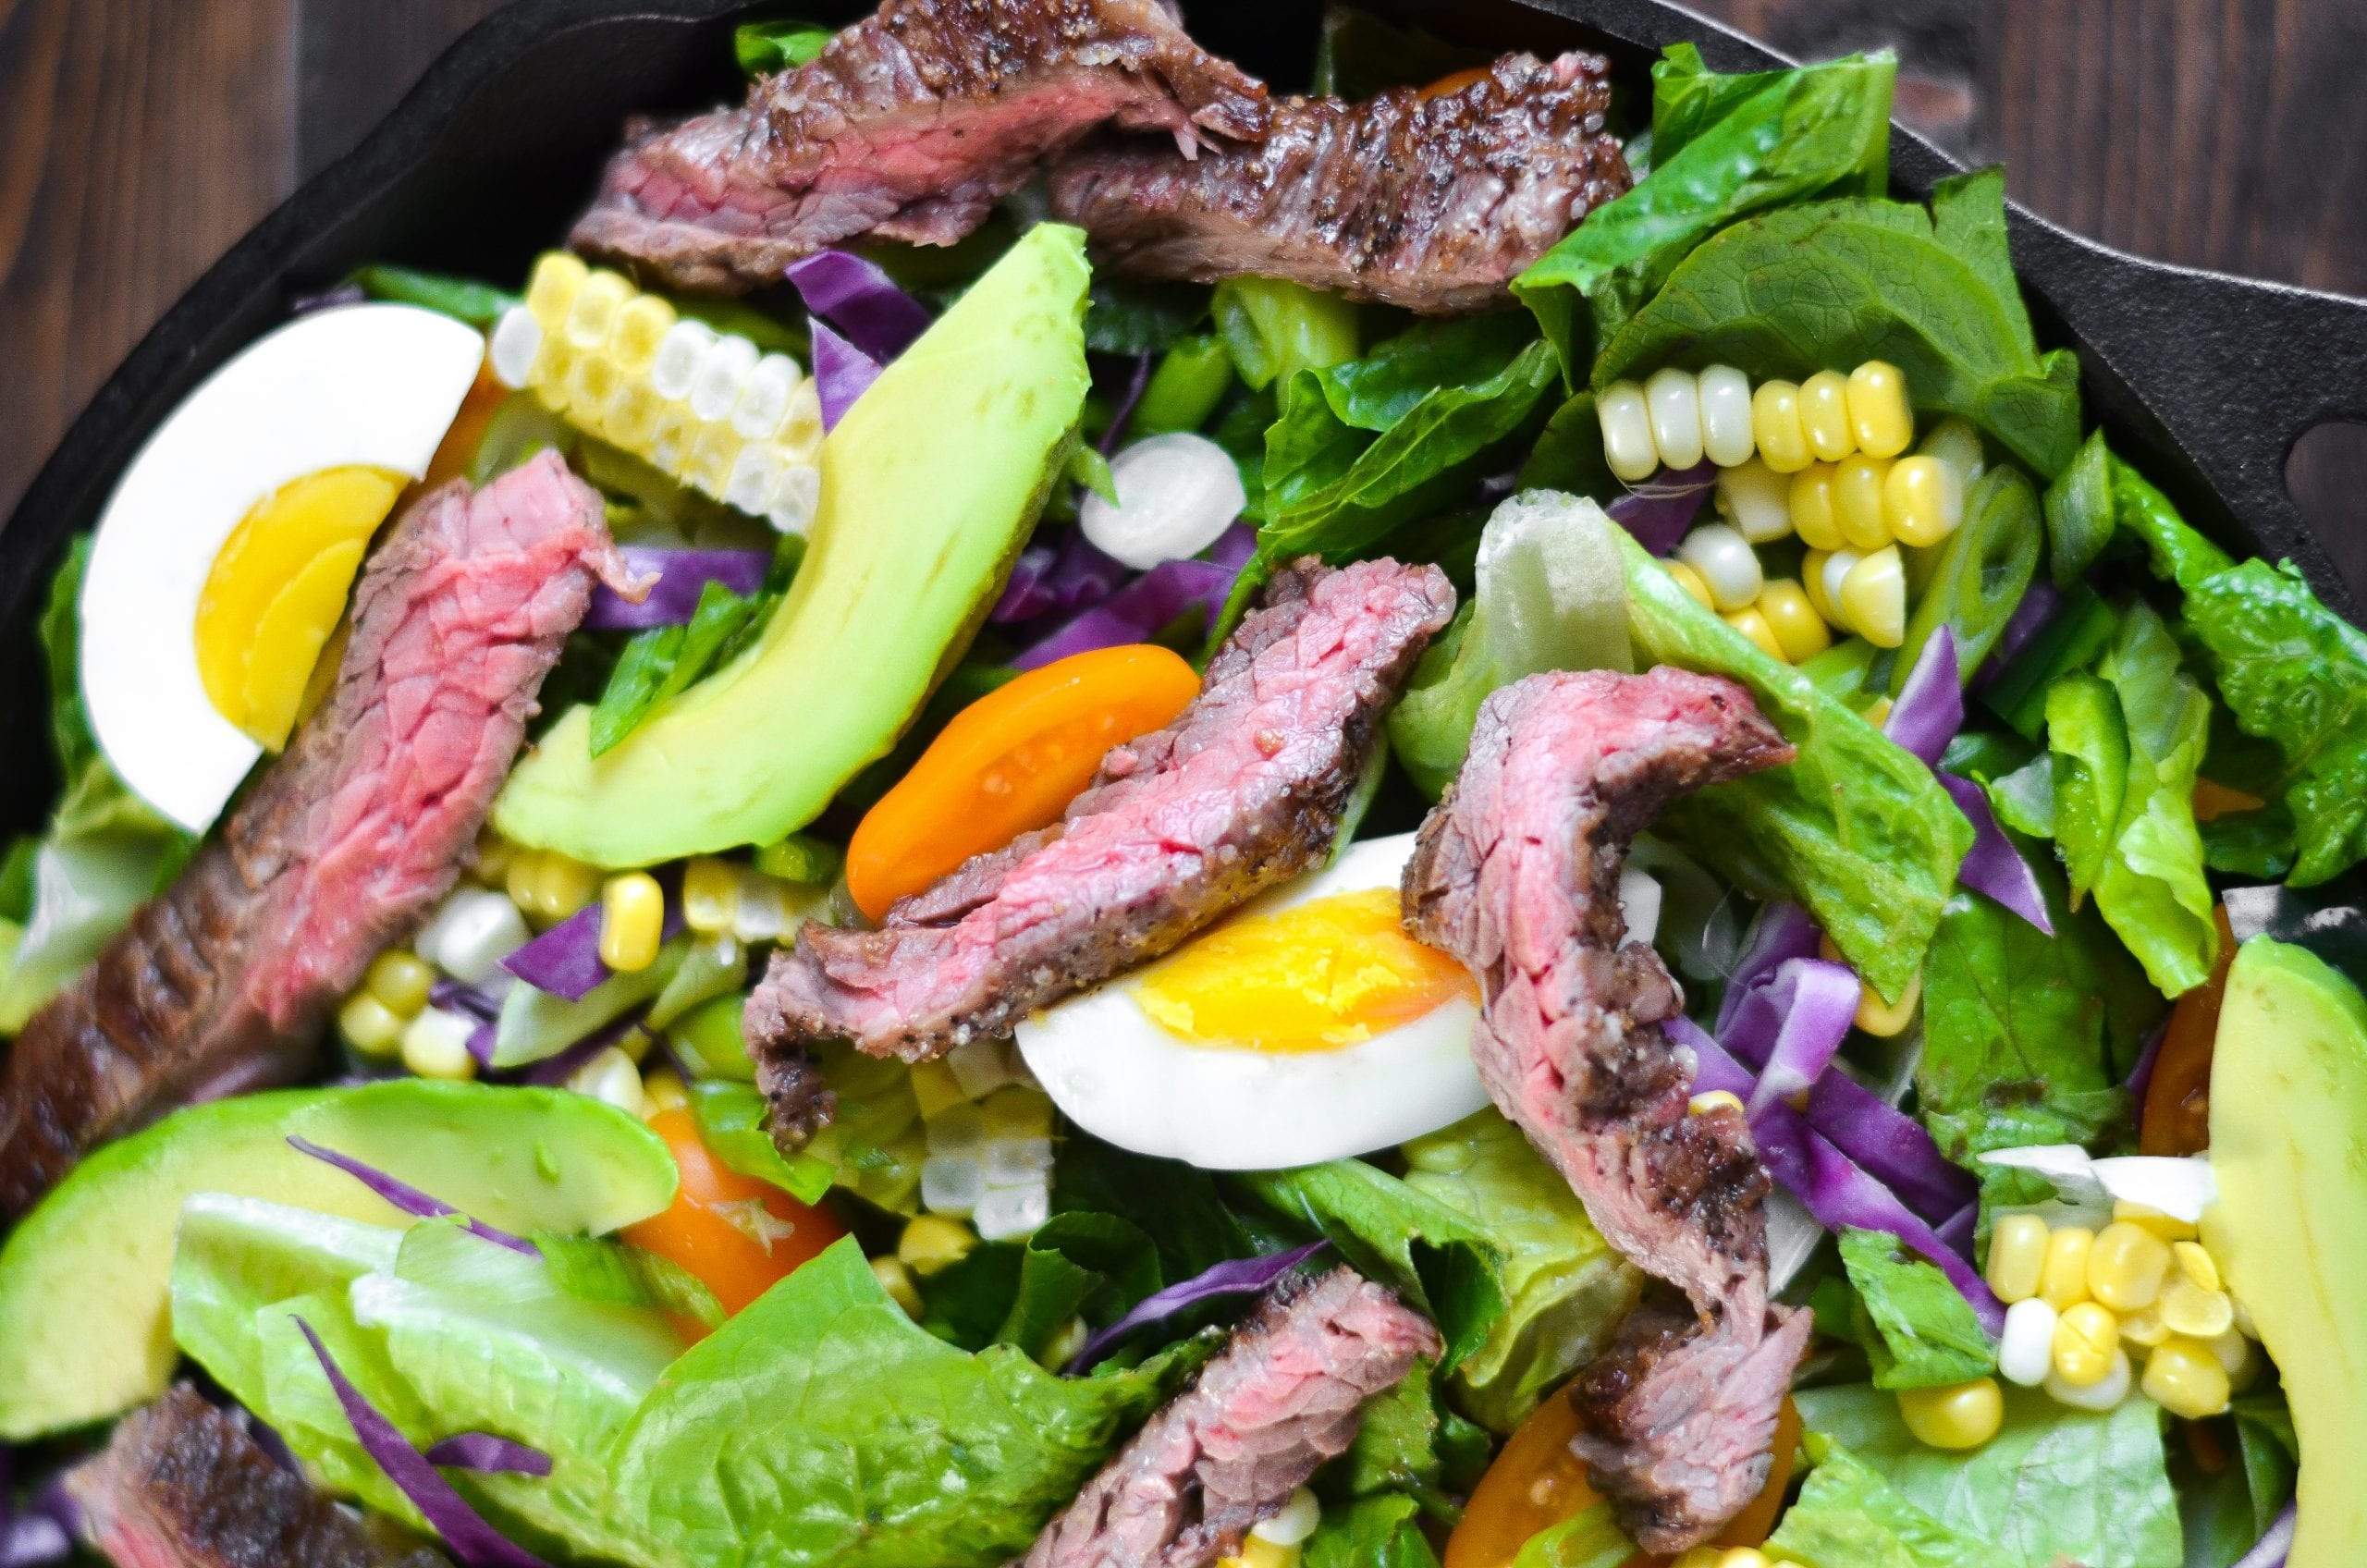 Southwest Steak Salad with Chipotle Ranch